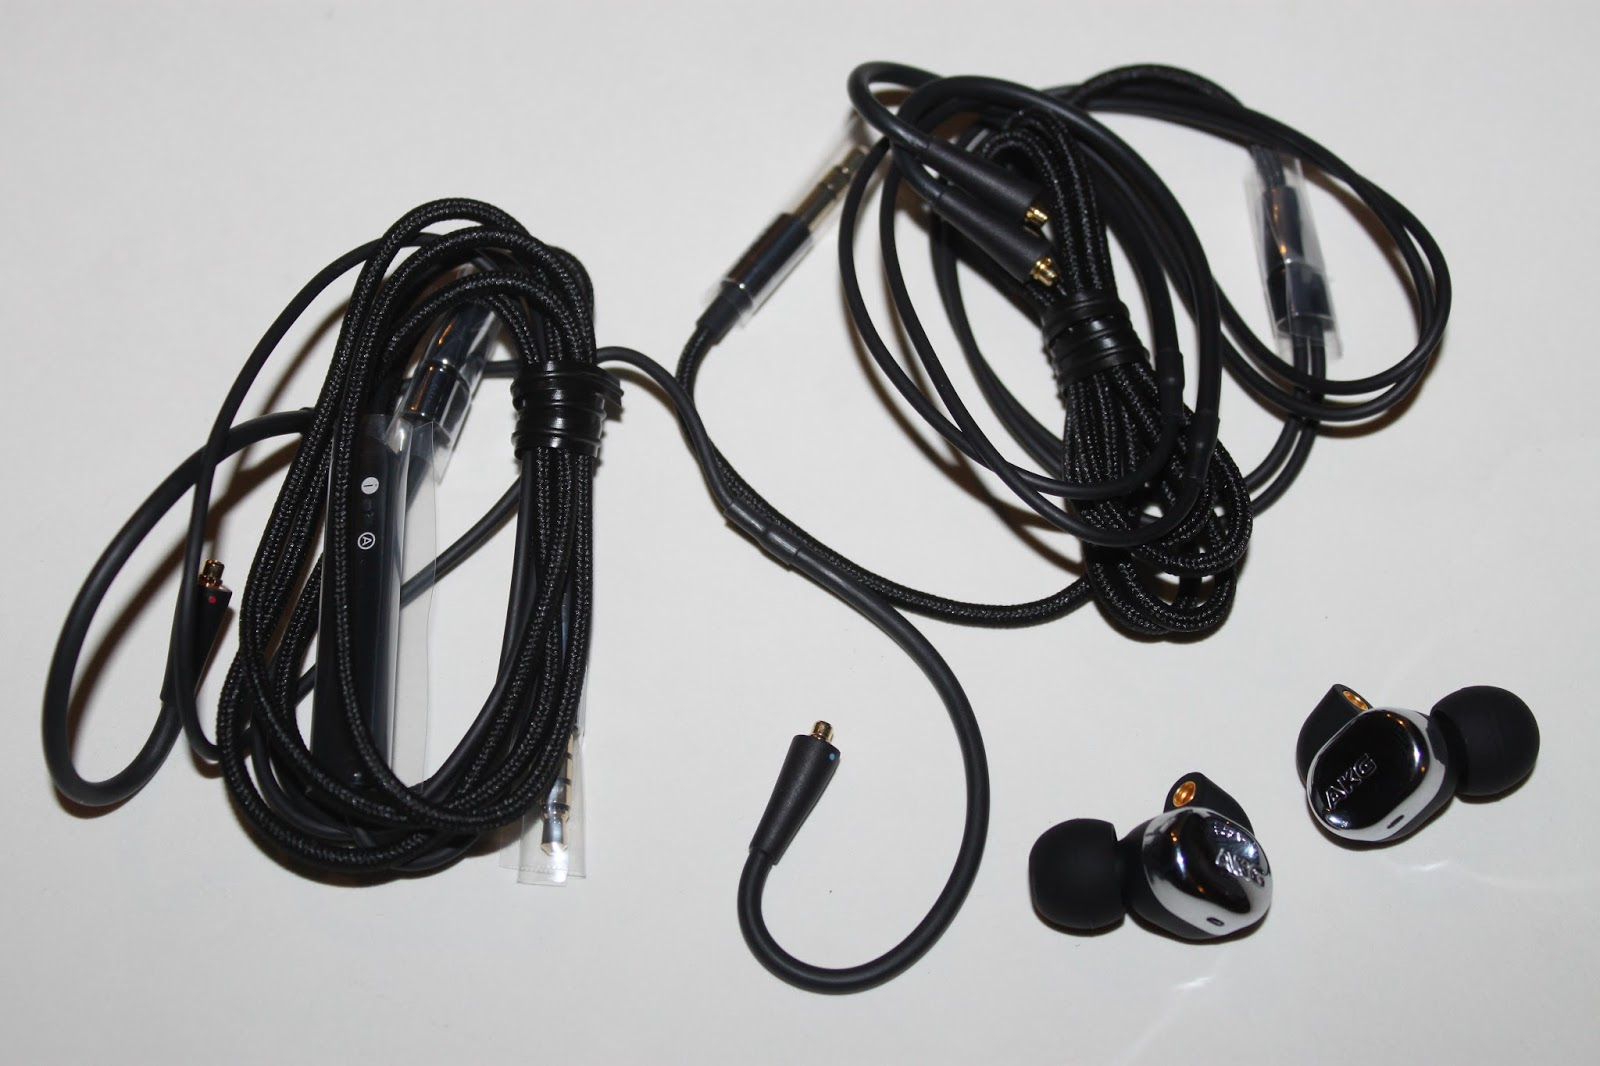 Stereowise Plus: AKG N40 2-way Hybrid In Ear Monitor Review